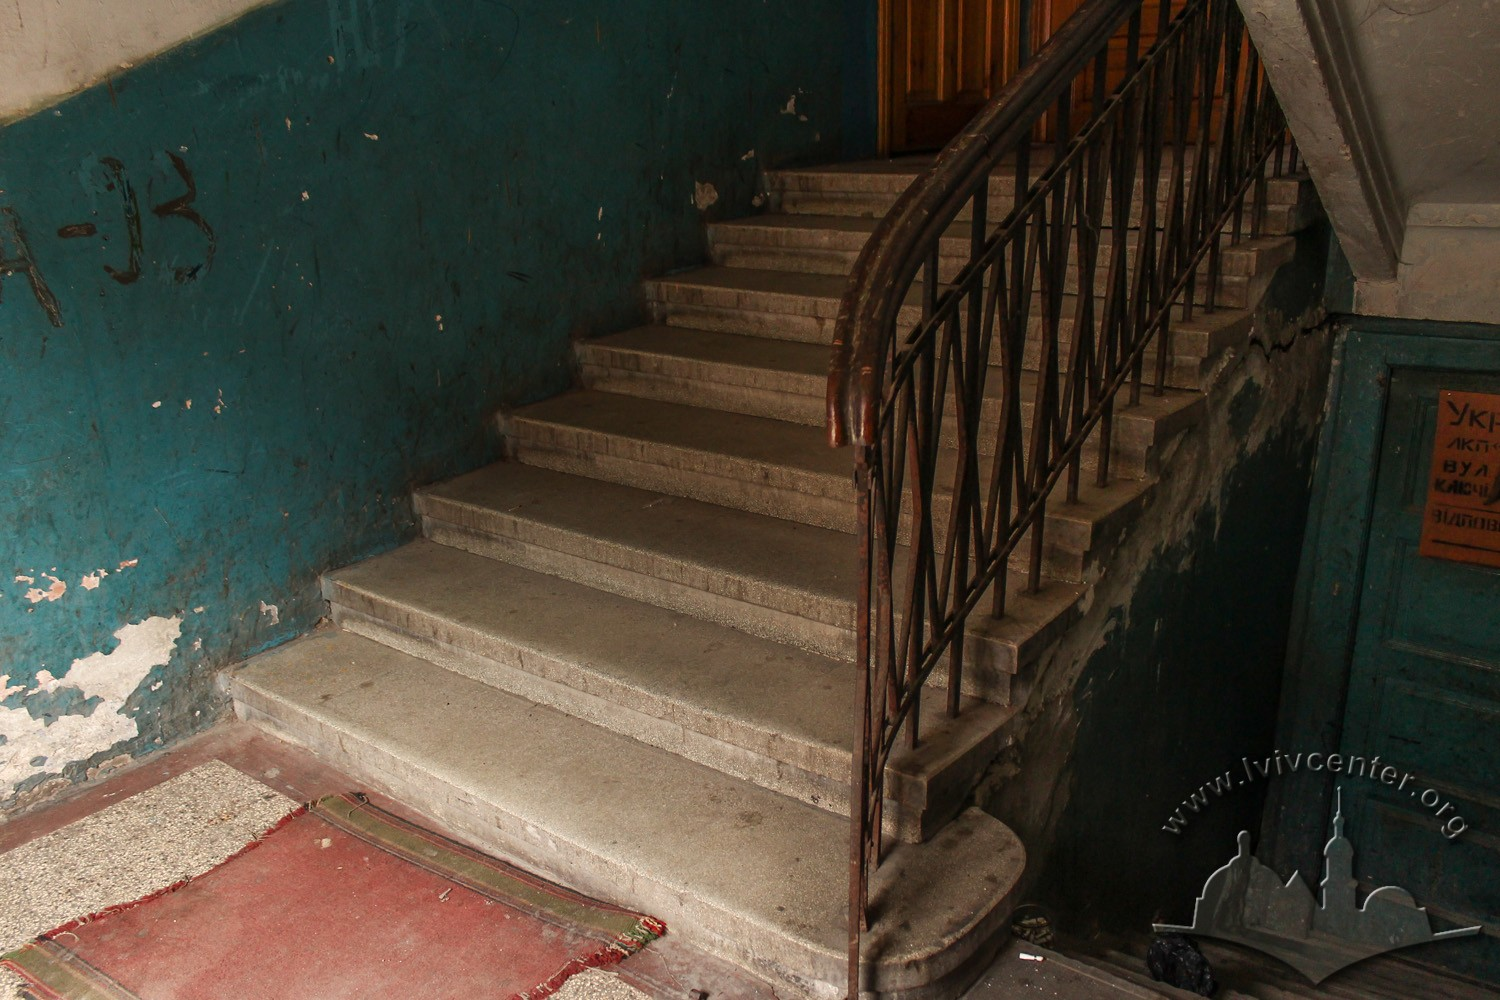 Vul. Donetska, 1. Central staircase/Photo courtesy of Olha Zarechnyuk, 2016